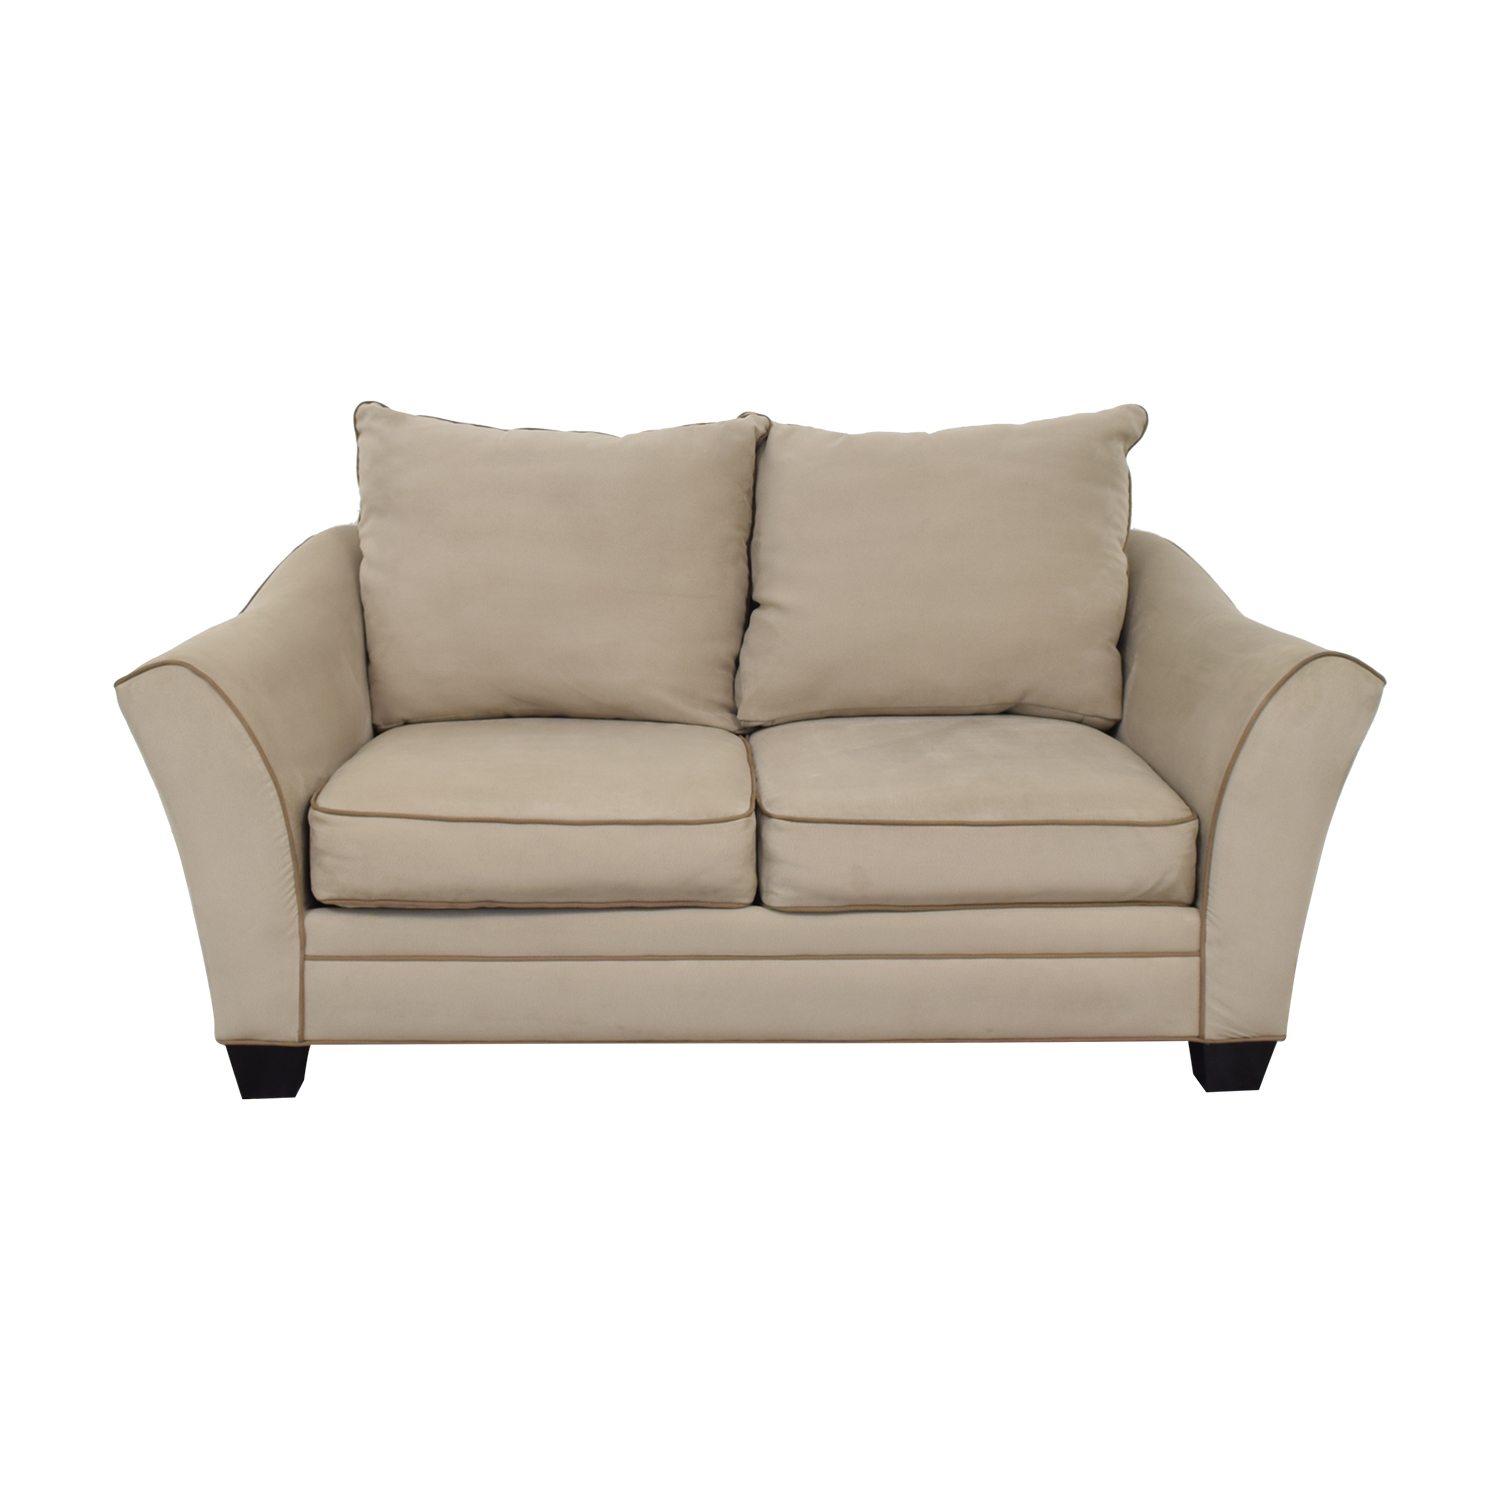 Raymour & Flanigan Raymour & Flanigan Foresthill Loveseat Loveseats